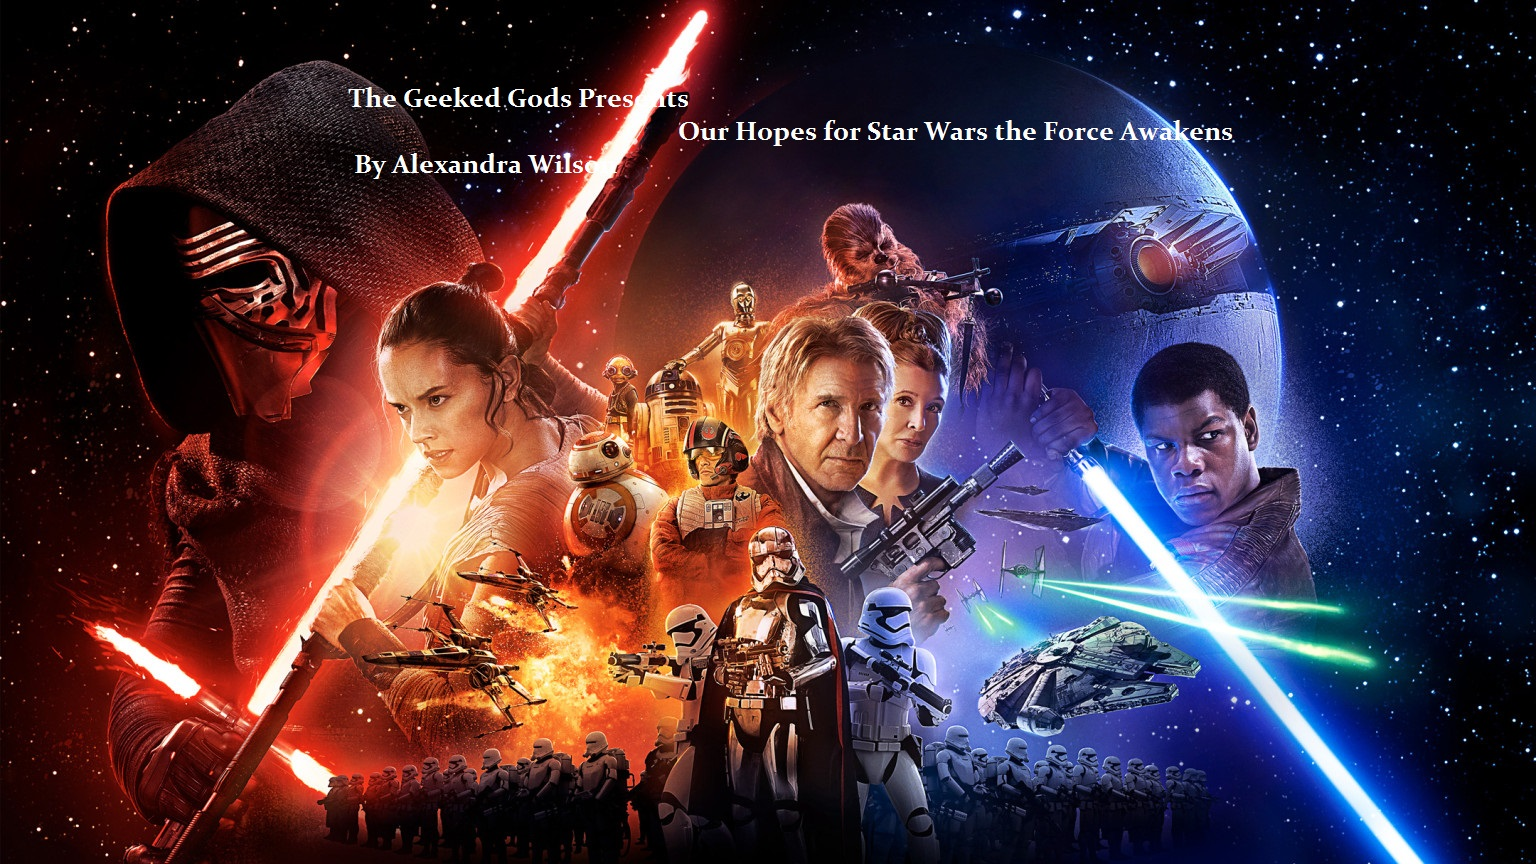 forceawakens 2 hopes